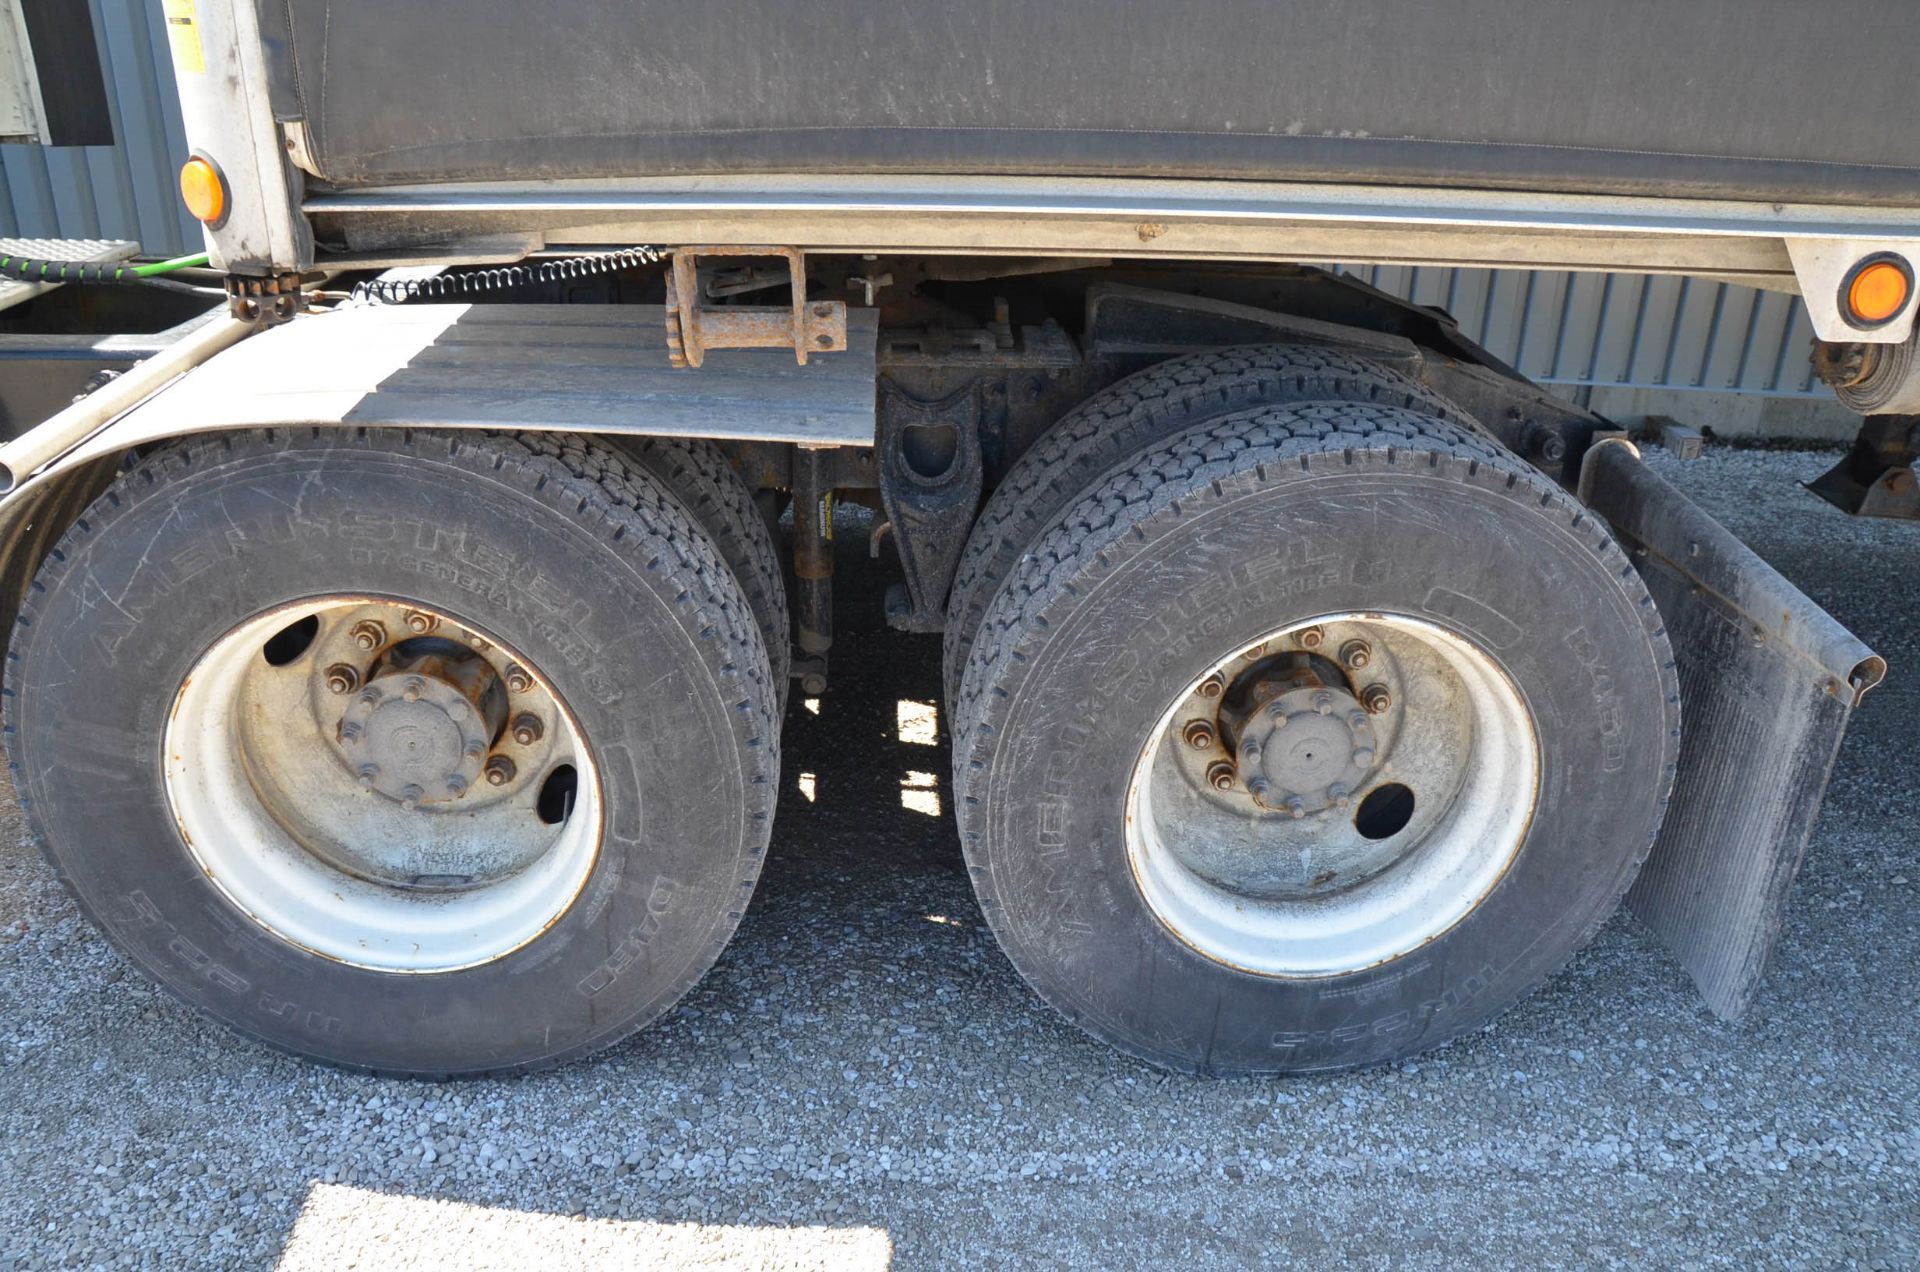 INTERNATIONAL 9200 6X4 TANDEM AXLE SEMI-TRACTOR TRUCK WITH . ENGINE, EATON-FULLER 13 SPEED MANUAL - Image 6 of 18